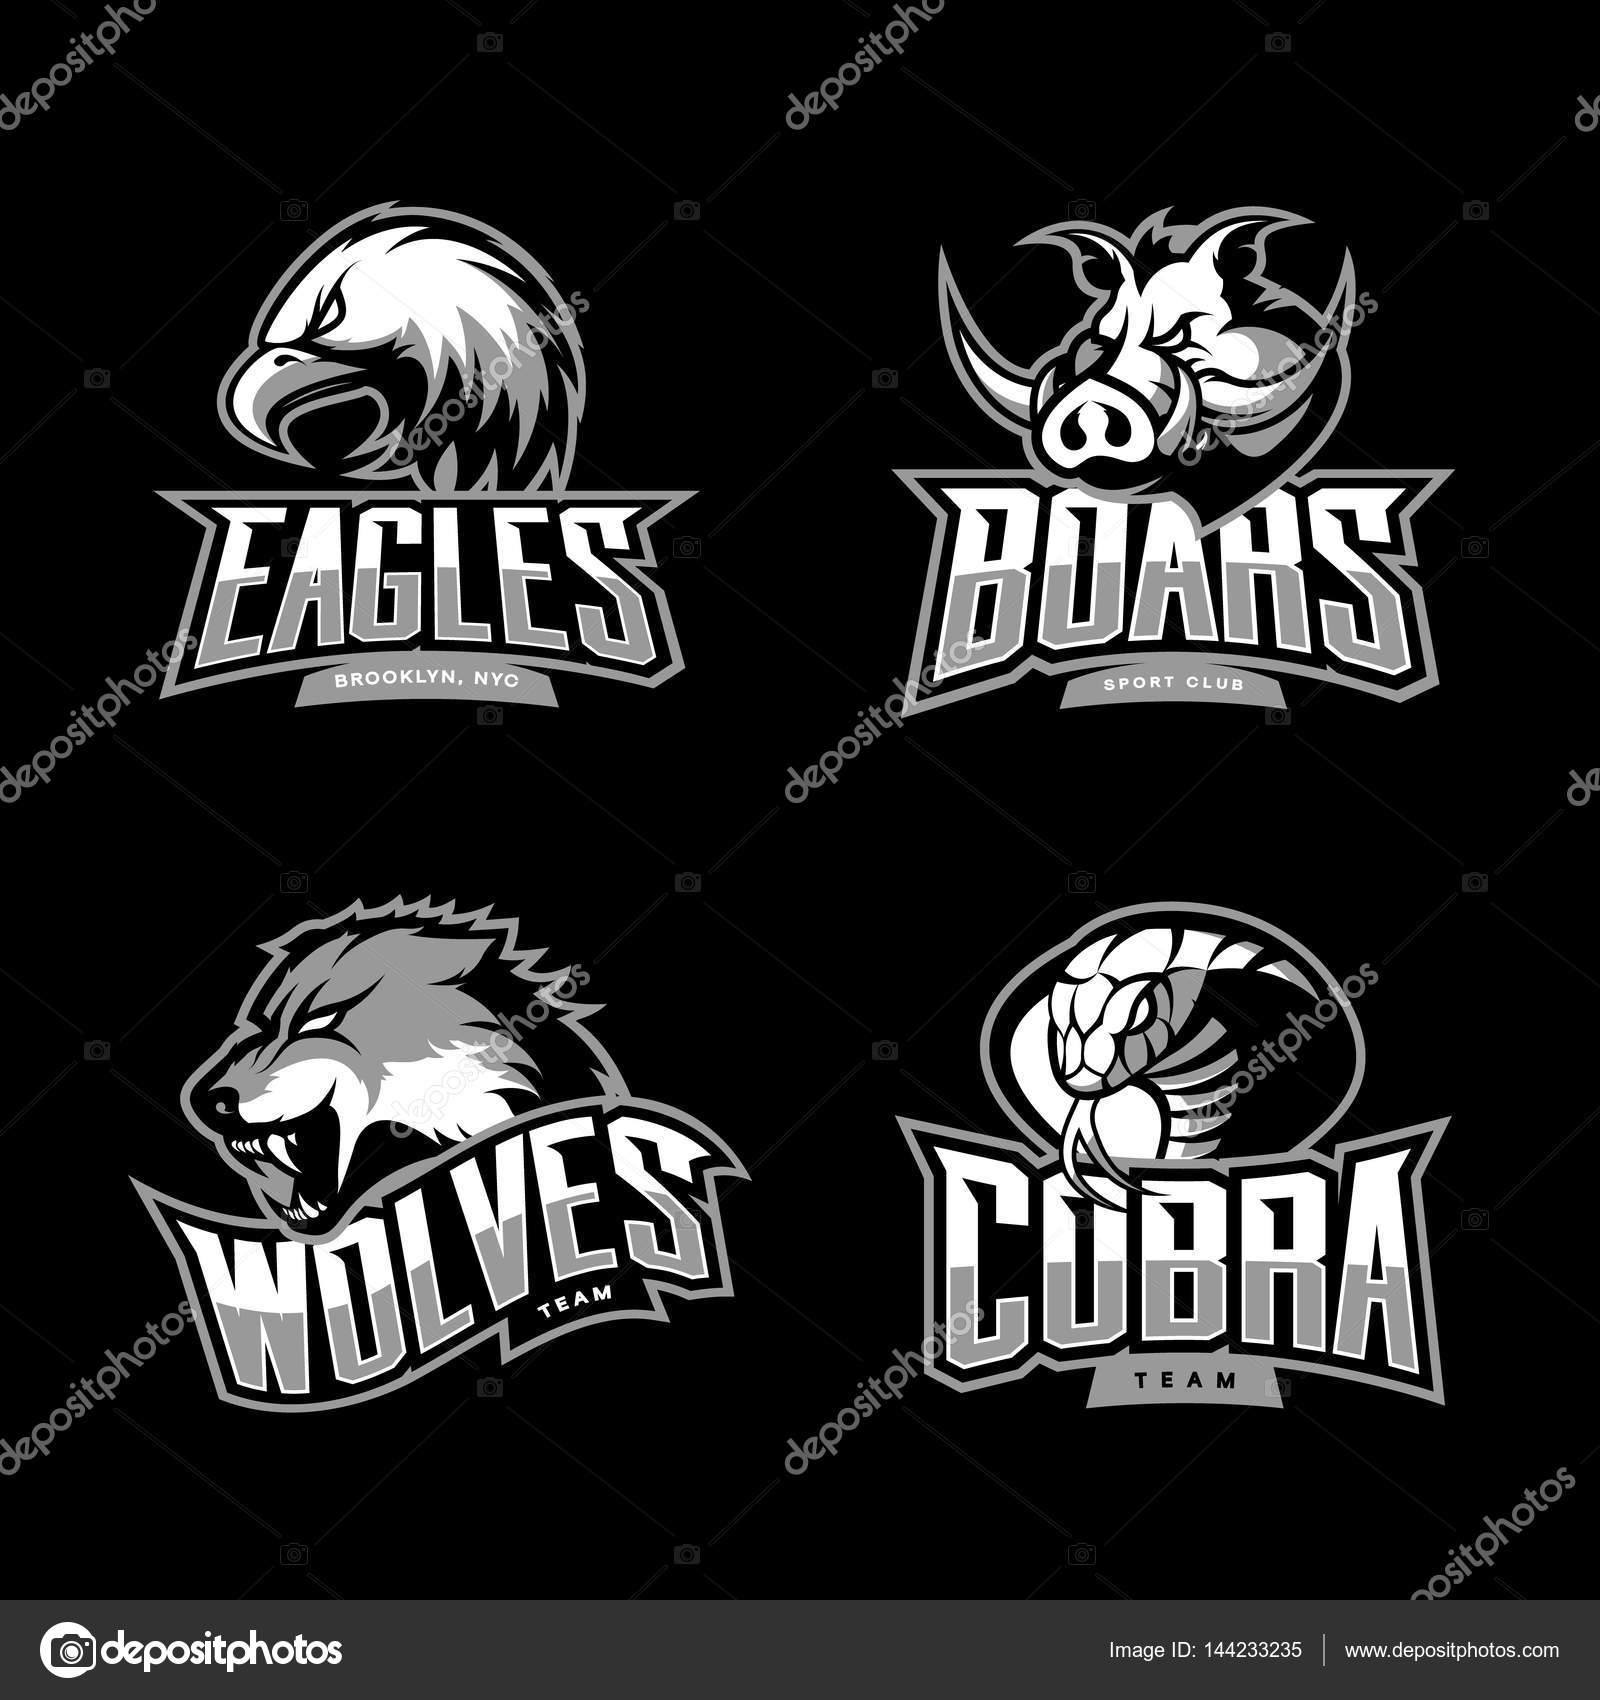 ᐈ cobra logos stock vectors royalty free cobra logo illustrations download on depositphotos https depositphotos com 144233235 stock illustration furious cobra wolf eagle and html